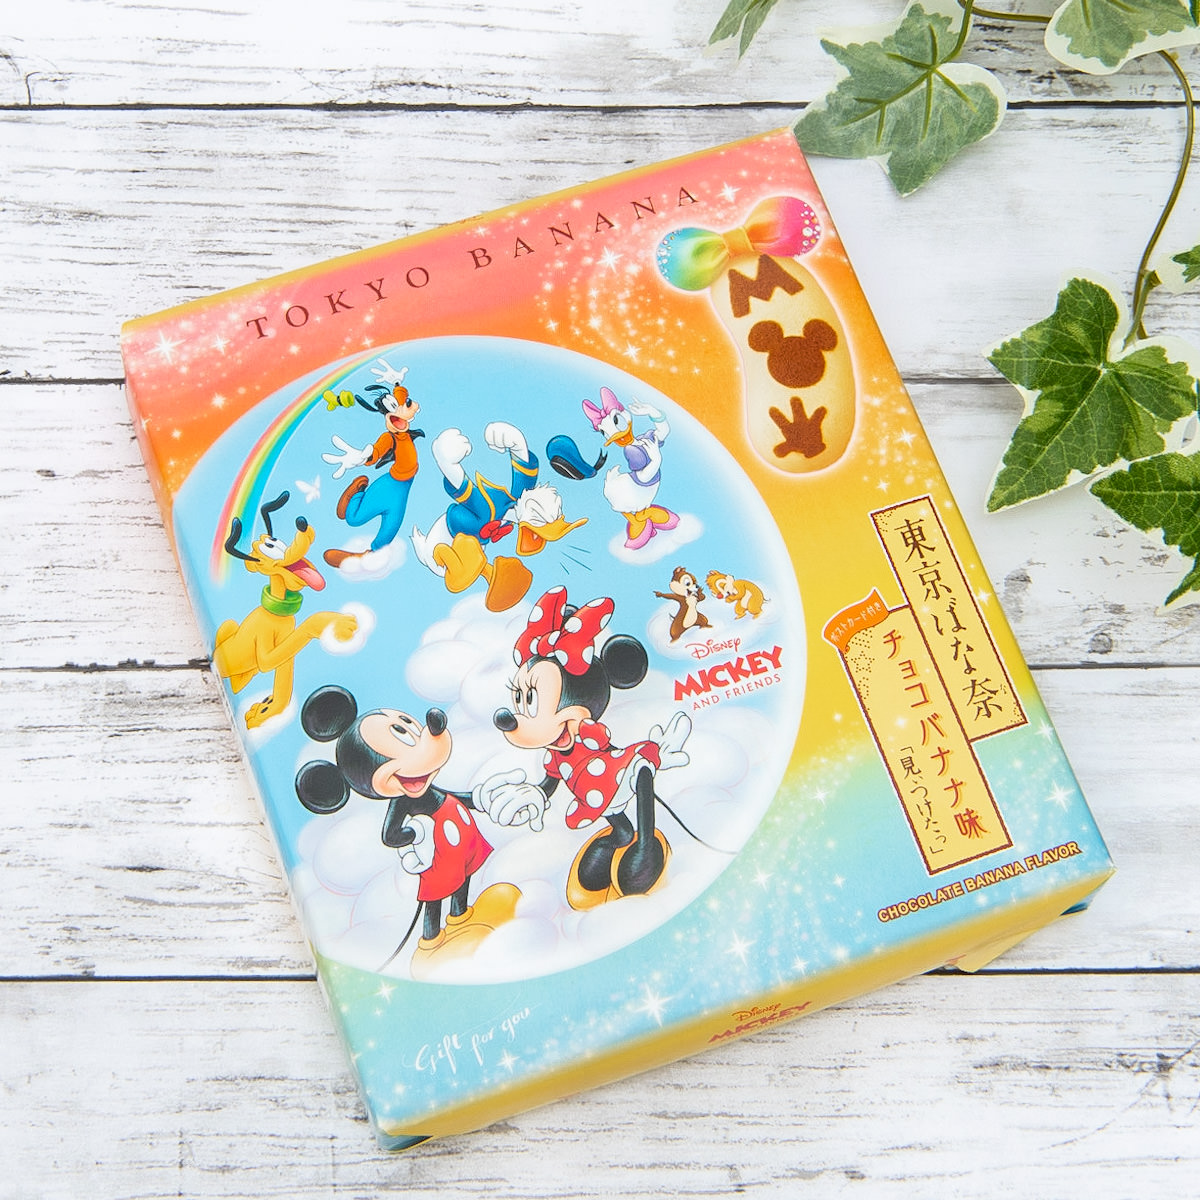 Disney SWEETS COLLECTION by 東京ばな奈『ミッキー&フレンズ/東京ばな奈「⾒ぃつけたっ」』イメージ2